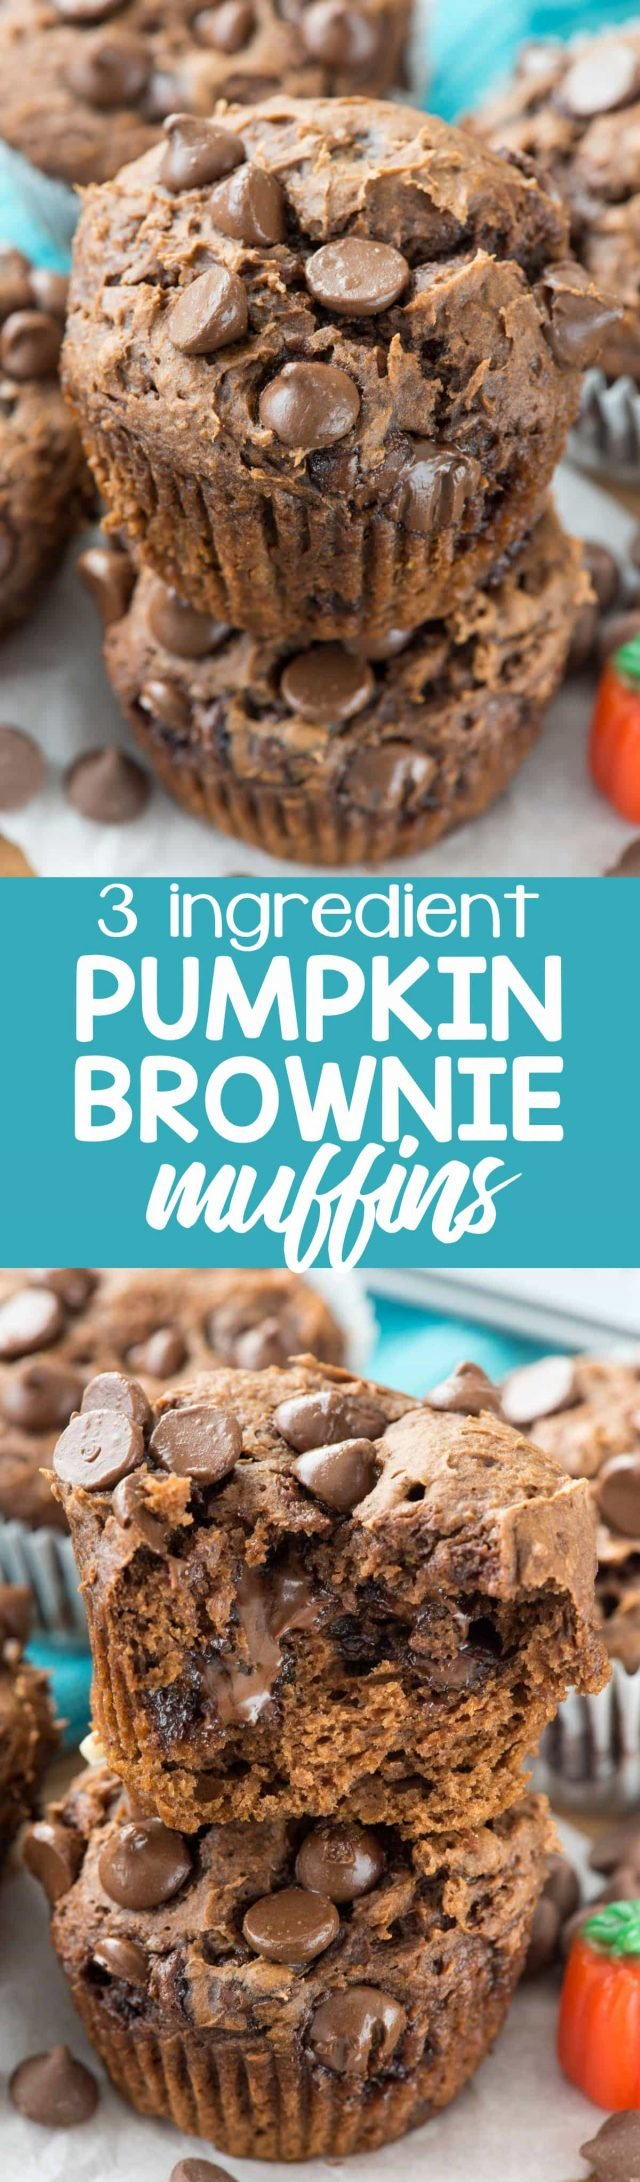 Pumpkin Brownie Muffins have just 3 ingredients: cake mix, pumpkin, and CHOCOLATE! Such an easy recipe to make and they're so good, they even pass the kid test.